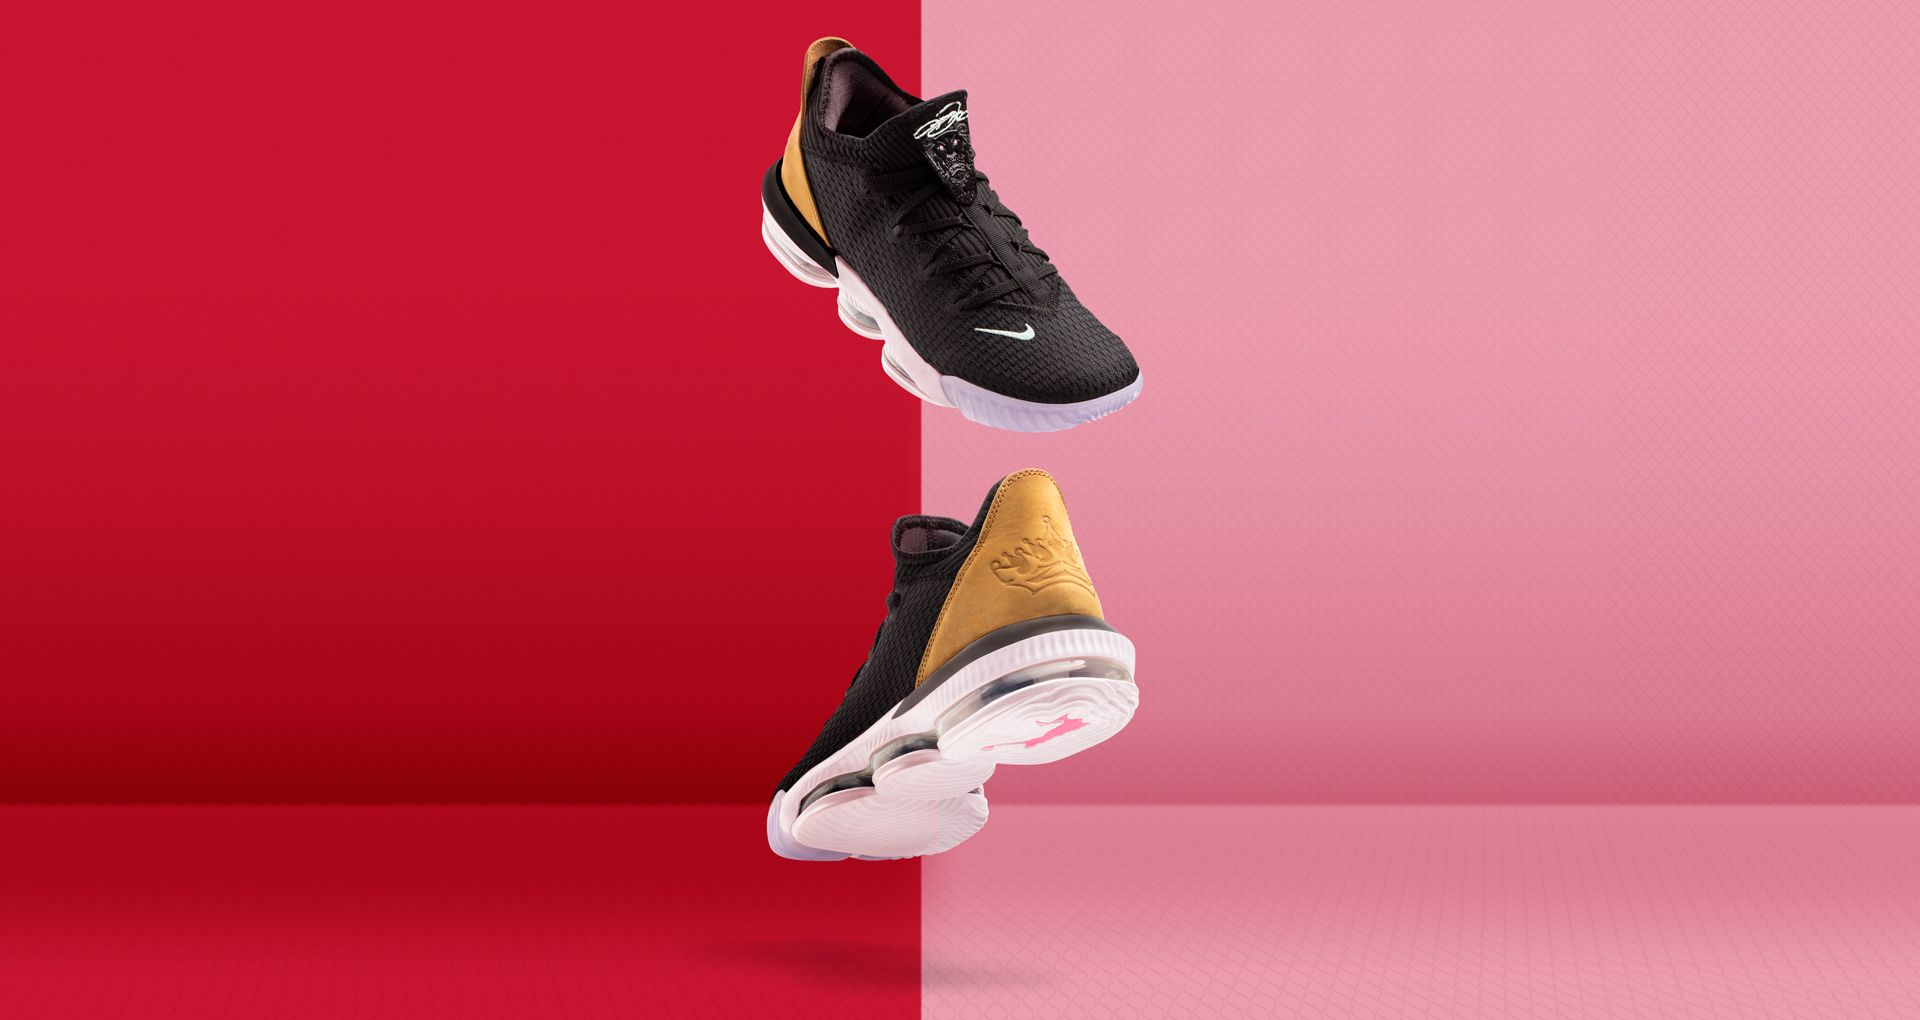 reputable site 975a1 5f62a Nike LeBron 16 Low  Soundtrack  Release Date. Nike+ SNKRS